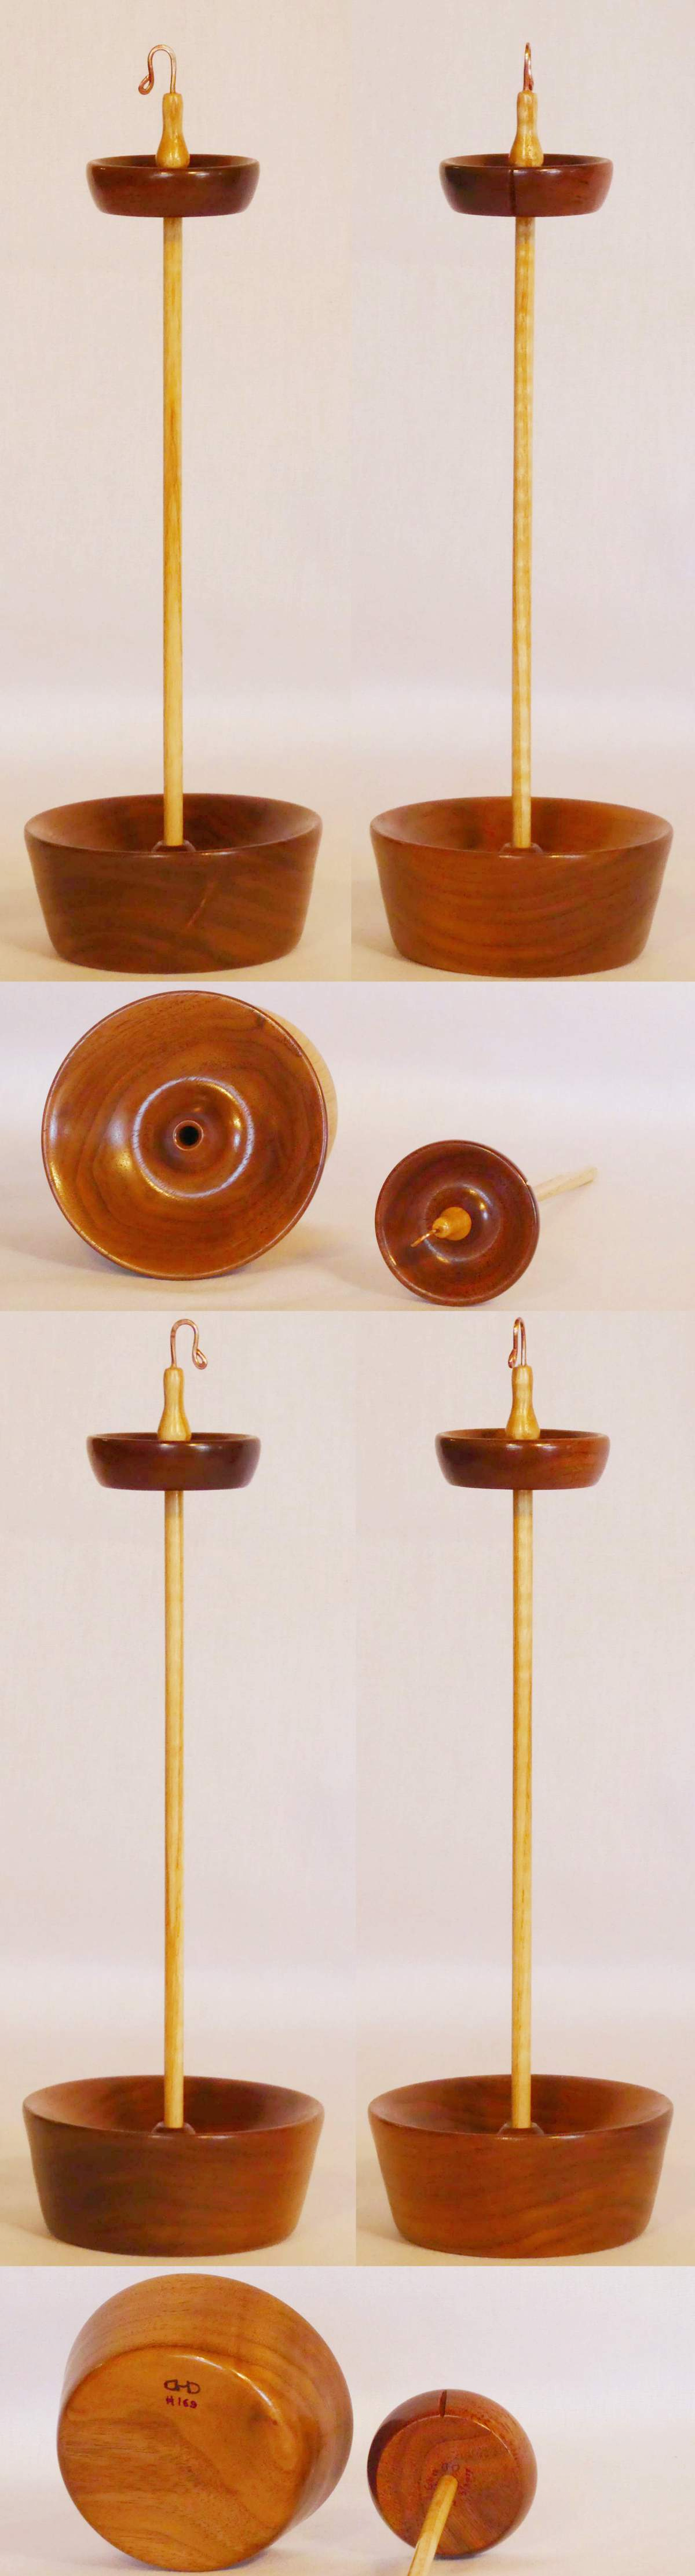 Handcrafted, handturned, and handmade Drop spindle and display stand set used to spin yarn, DIY, created by Cynthia D. Haney in Walnut and Ash woods